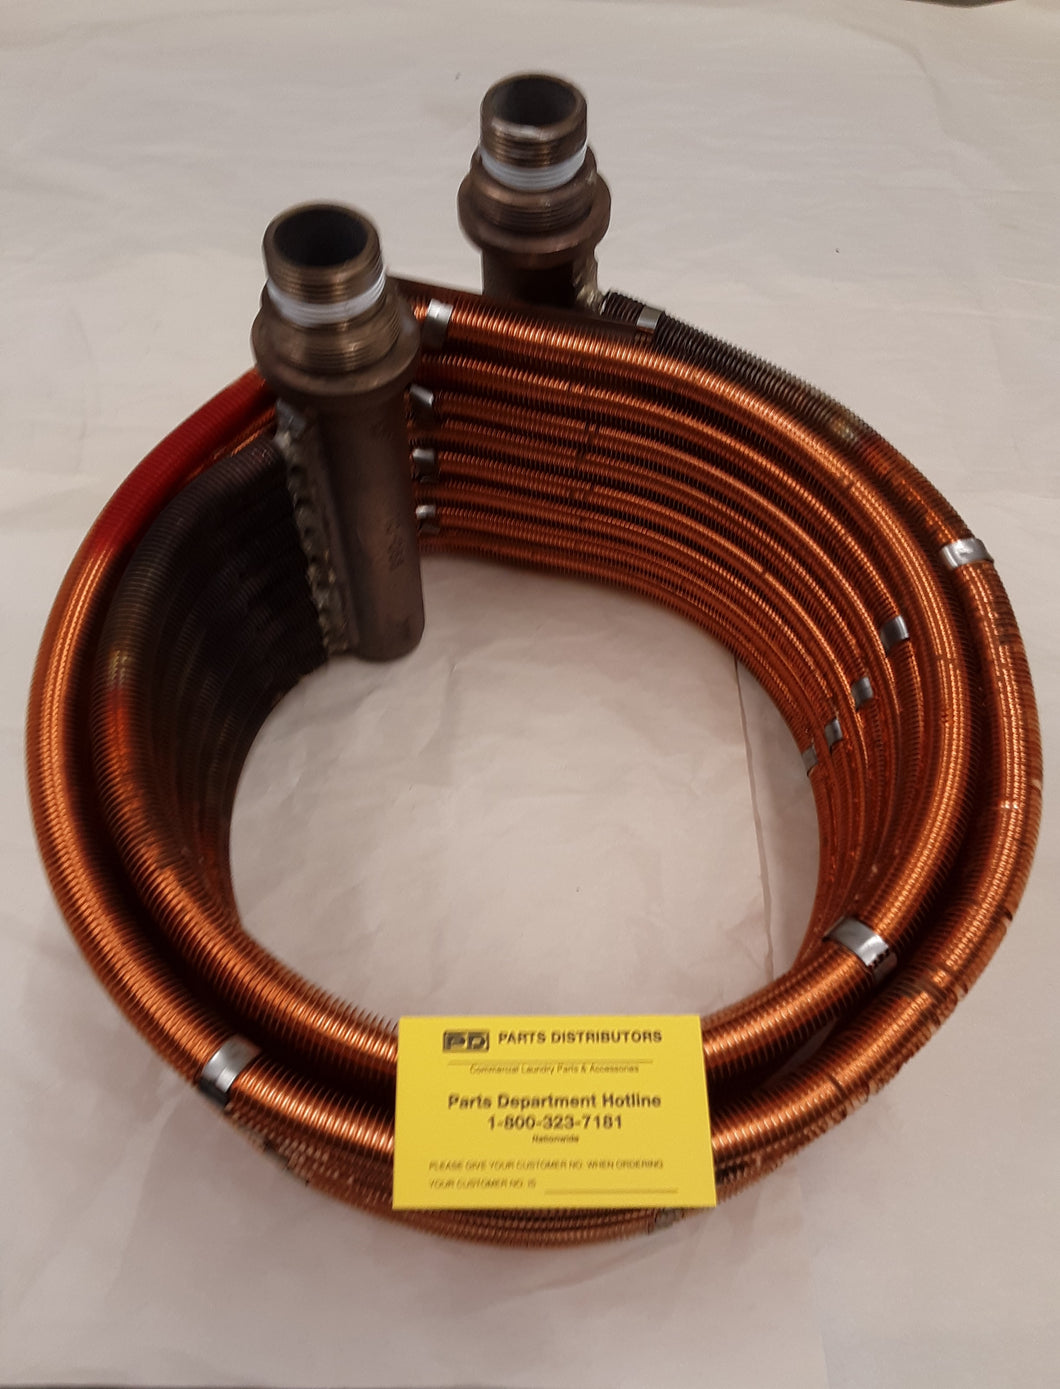 10-054 ADVANTAGE COPPER COMBUSTION UNIT CLEARANCE ITEM BELOW COST WHILE SUPPIES LAST